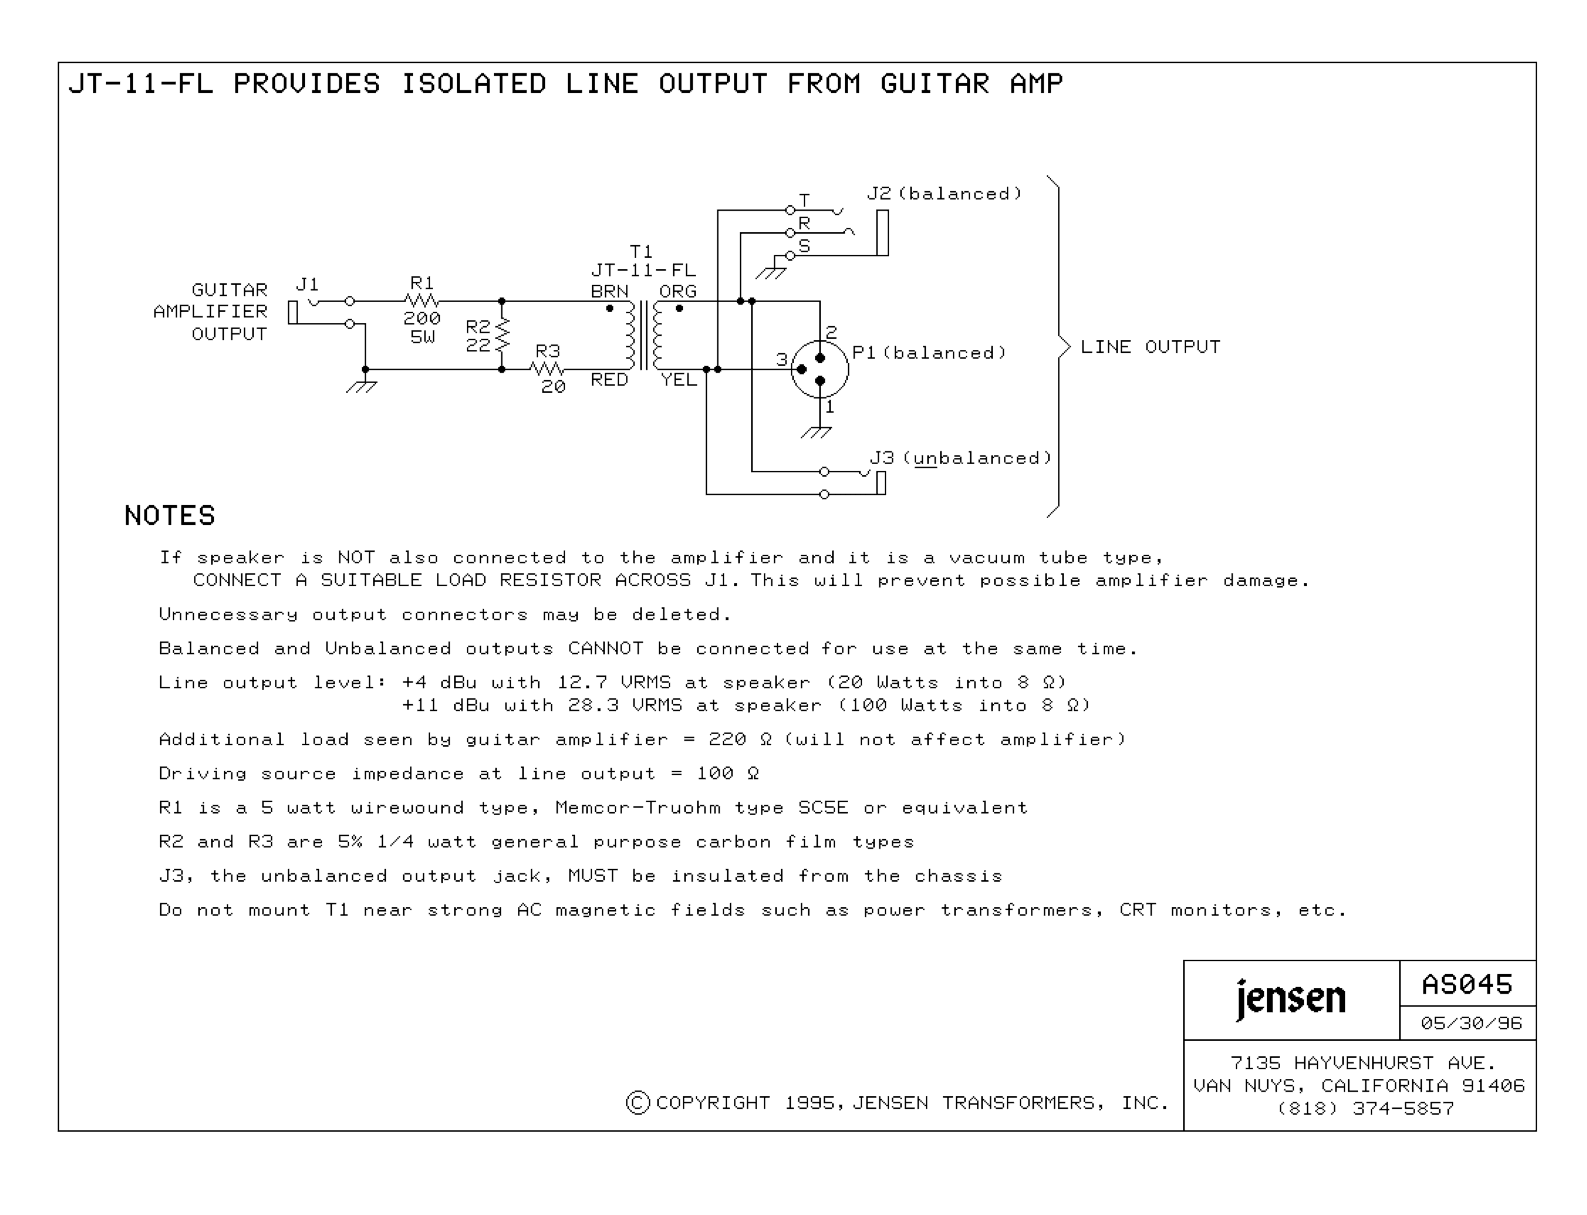 Wiring A Volume Control Between XLR Jack and Audio Transformer | The on rectifier wiring, chassis wiring, choke wiring, capacitor wiring, ignition interlock device wiring, output transformer repair, resistor wiring, transistor wiring, output transistors, output transformer design, variac wiring, speaker wiring,